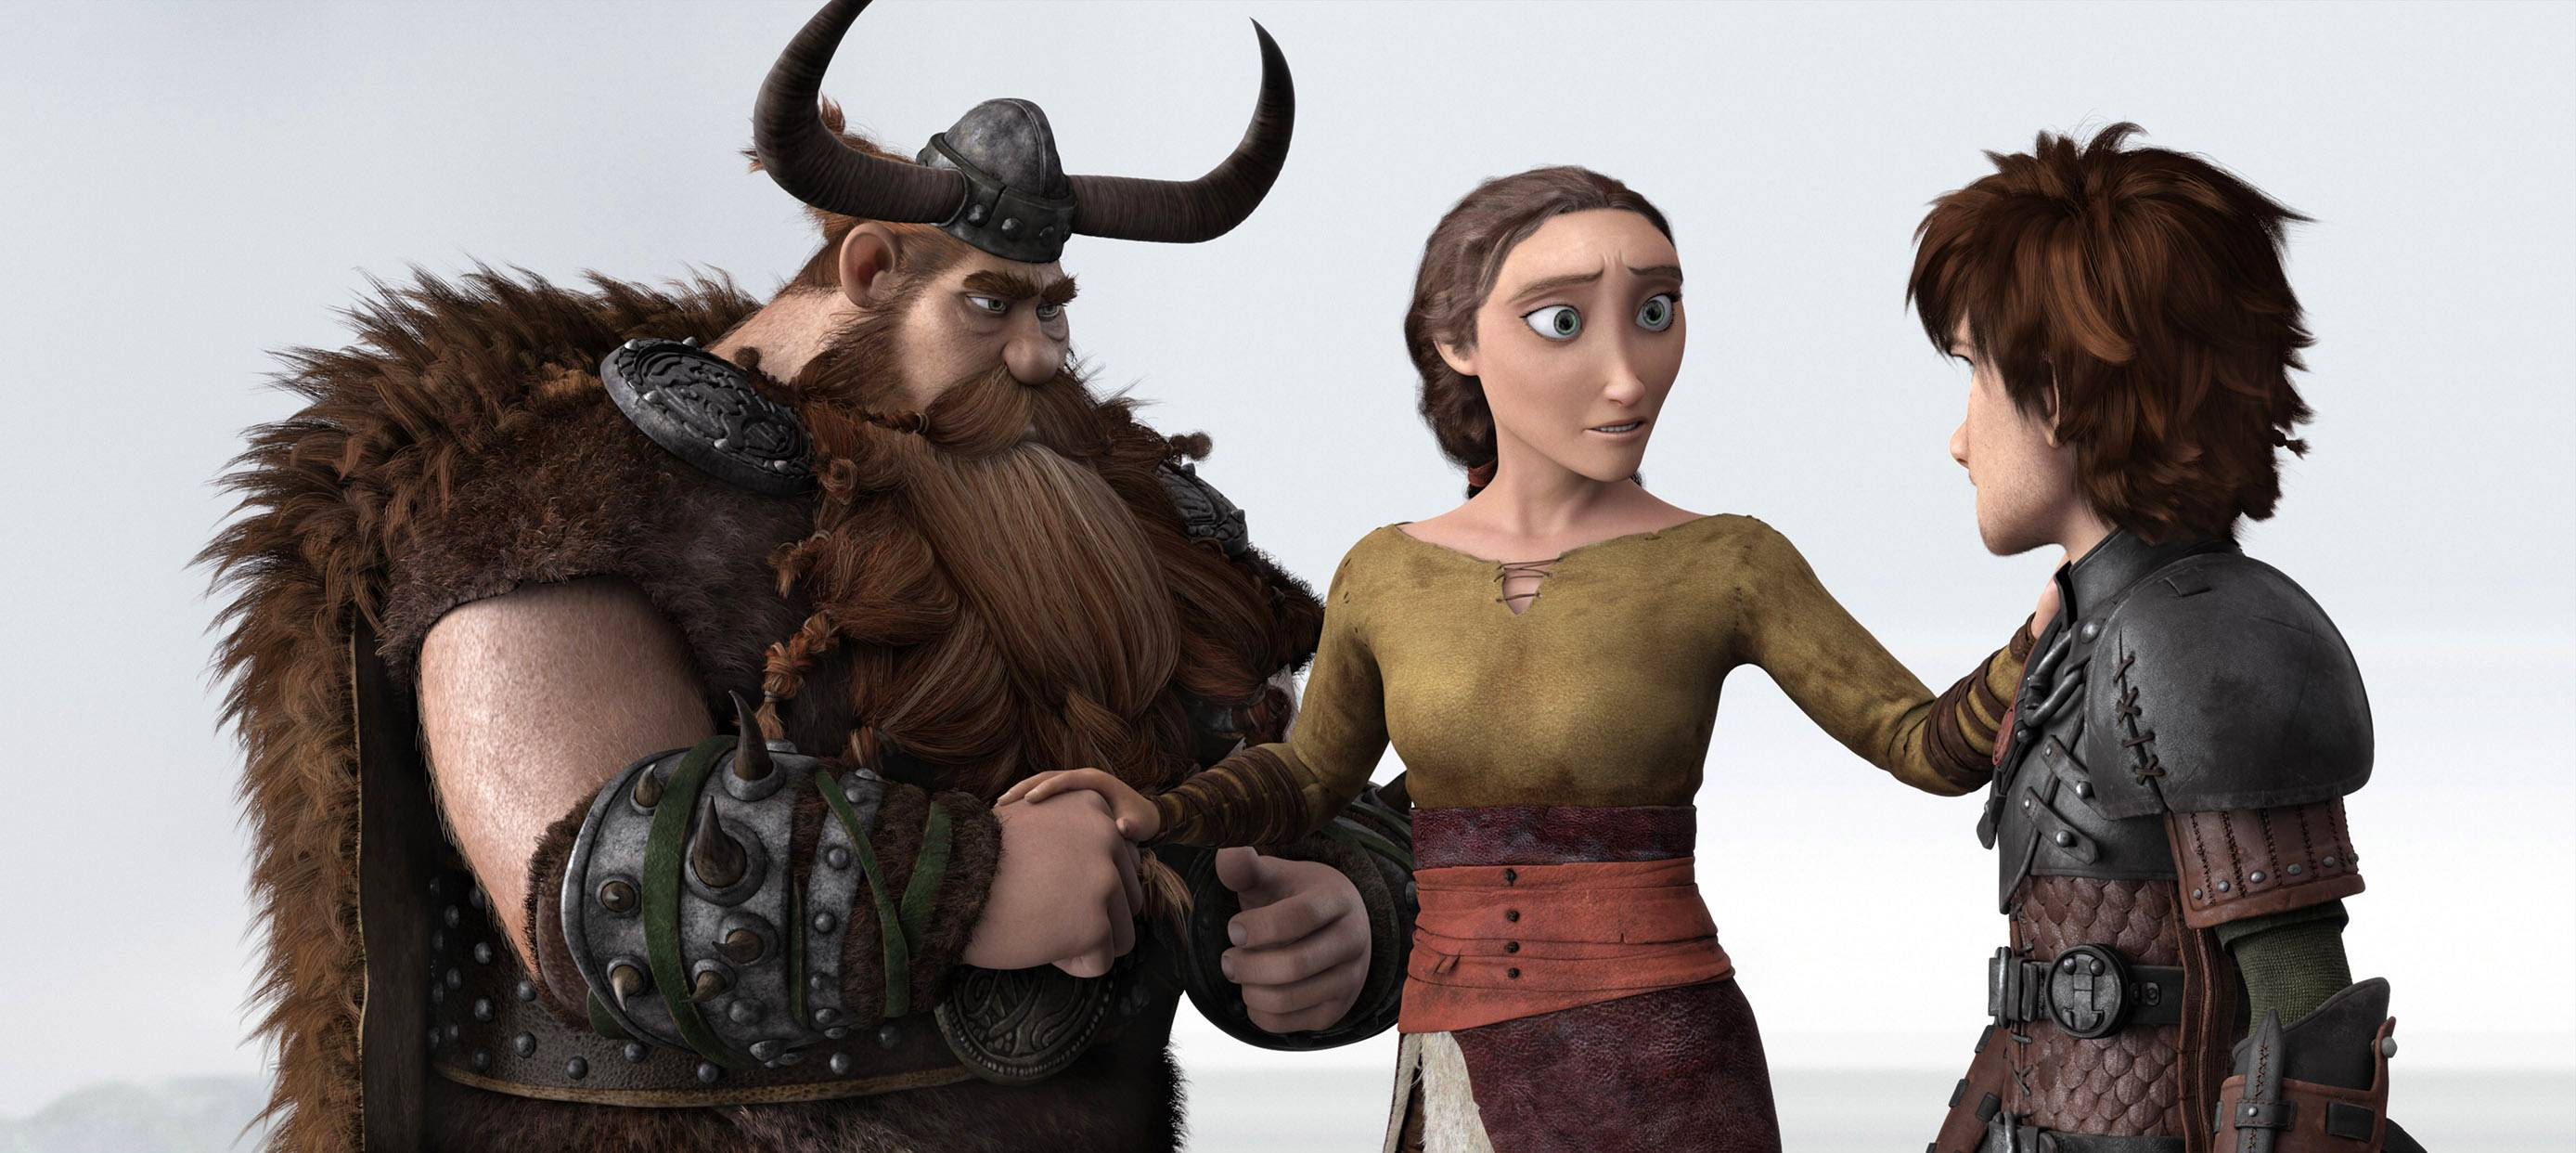 "Stoick (Gerard Butler), left, and Hiccup (Jay Baruchel), right, reunite with Hiccup's presumed-dead mother Valka (Cate Blanchett) in ""How To Train Your Dragon 2."""